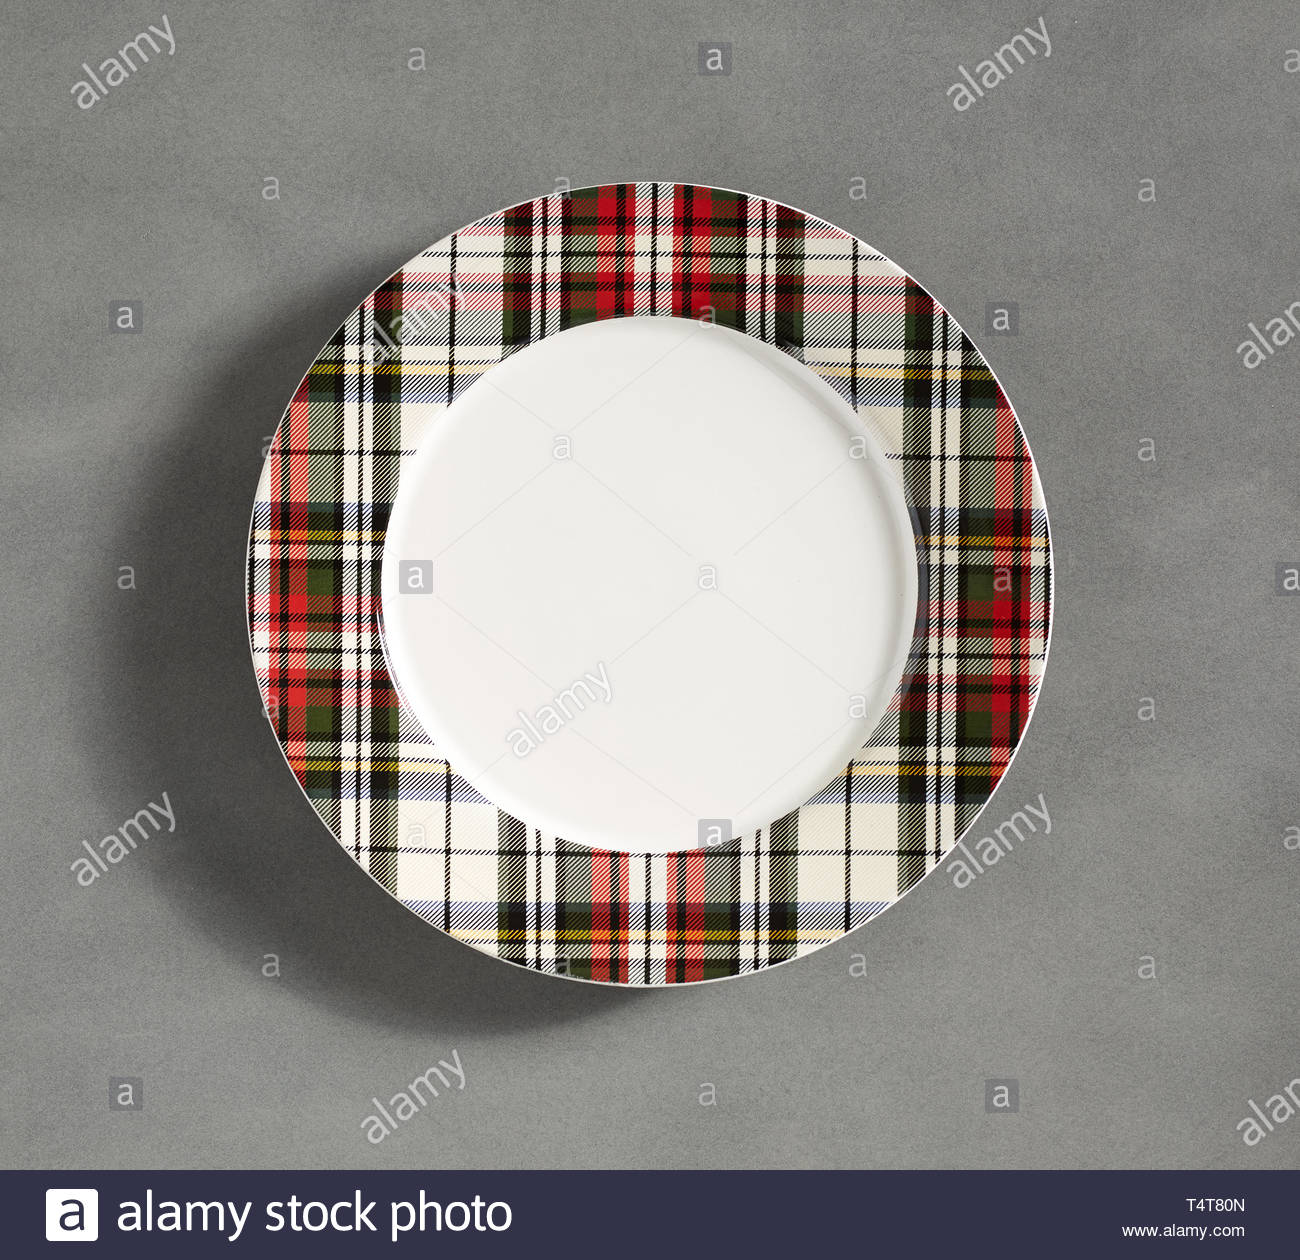 Christmas Shall We Holiday Dessert Plates Designer Plate Round